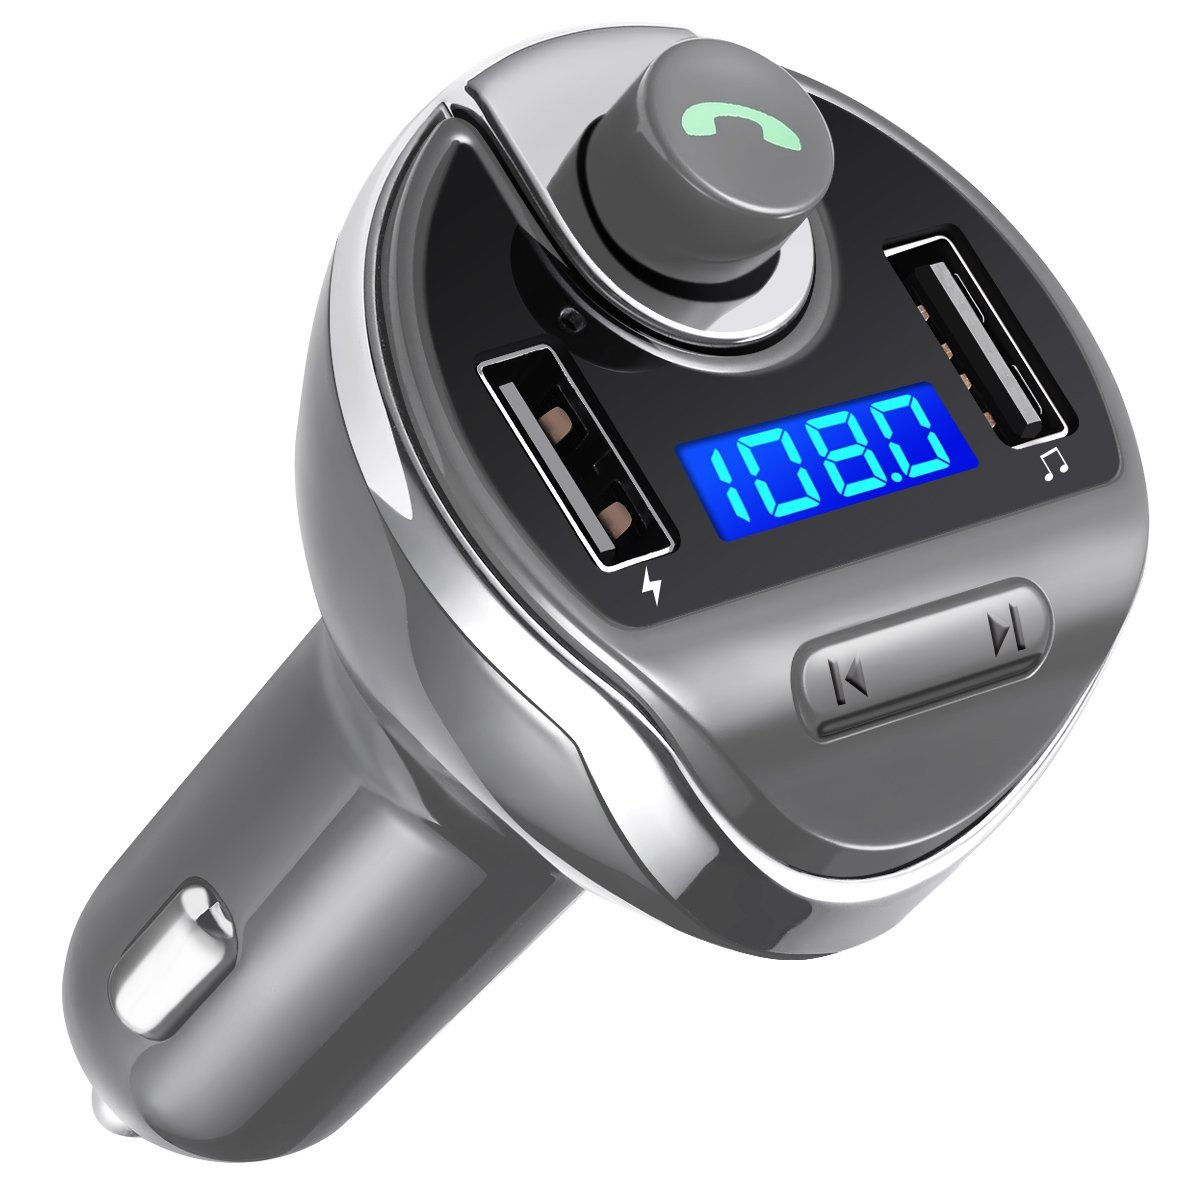 New Update Bluetooth FM Transmitter, Wireless in-Car FM Transmitter Radio Adapter Car Kit, Universal Car Charger with Dual USB Charging Ports, Hands Free Calling for All Smartphones.(Grey)